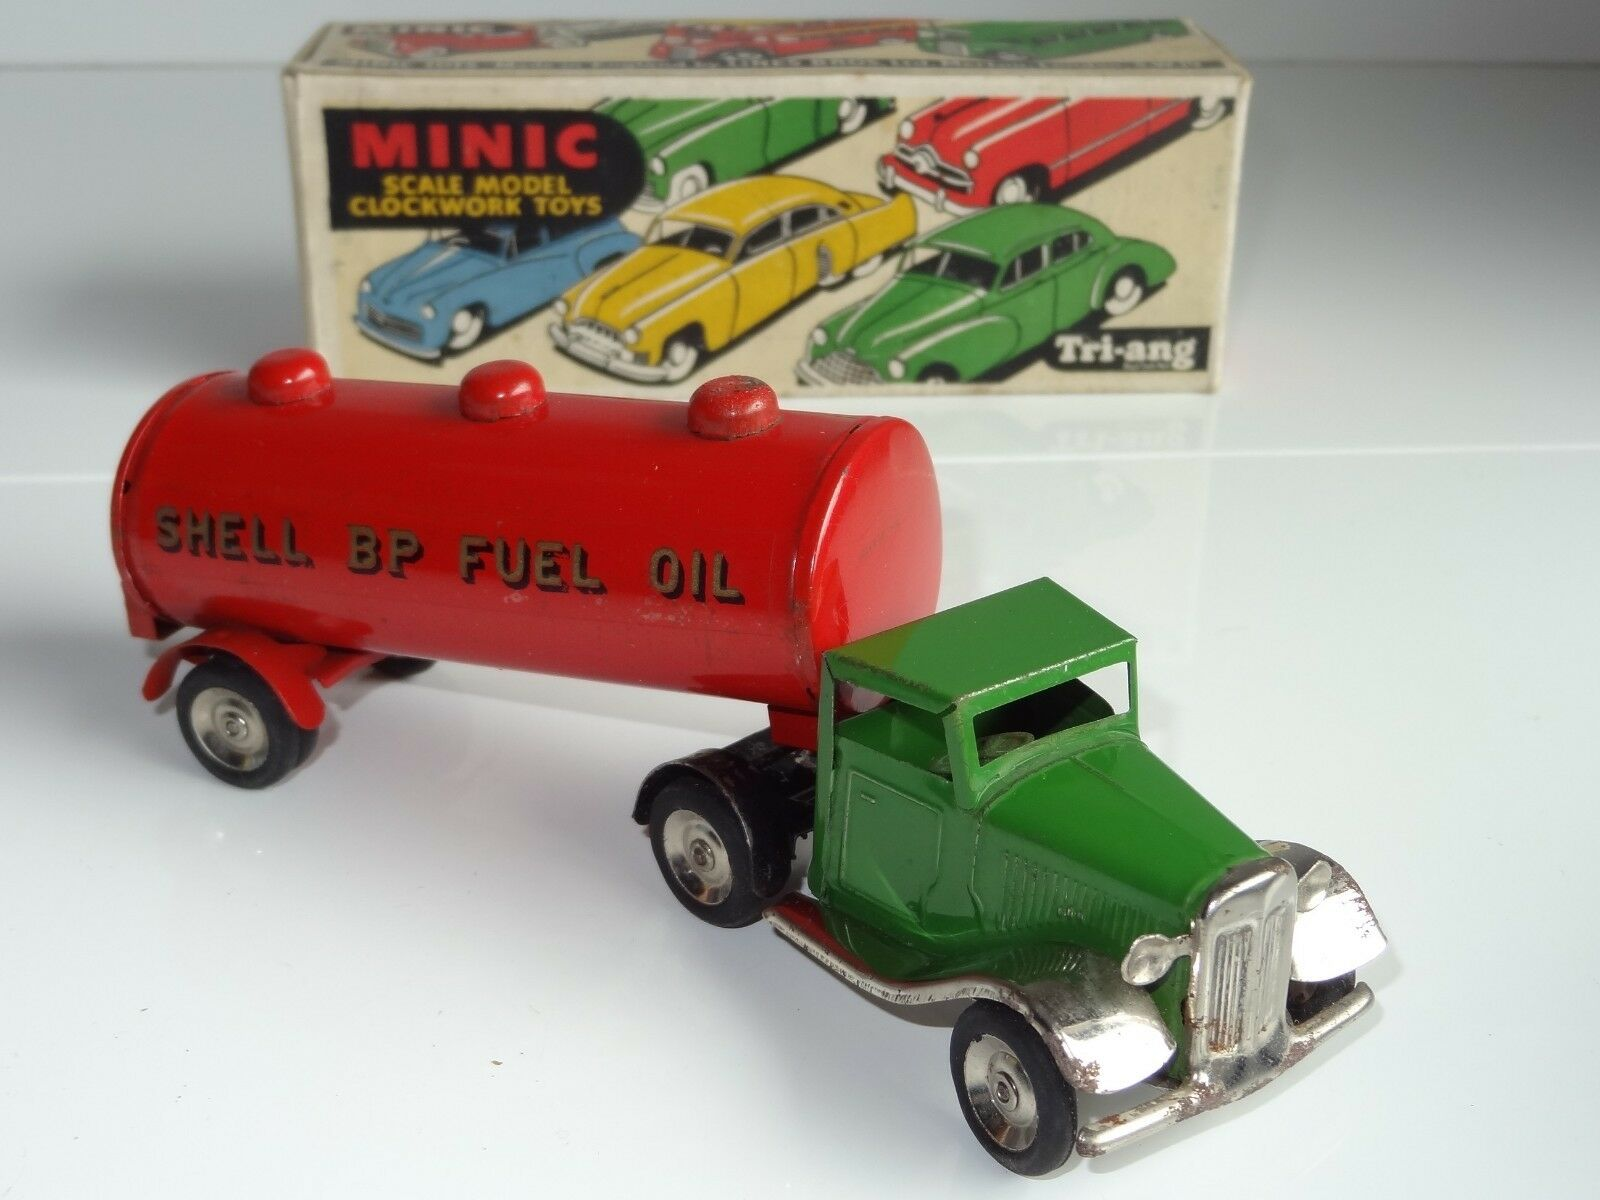 (a) Triang Minic mecánico Horse & Fuel Oil Remolque BP Shell - 31 M